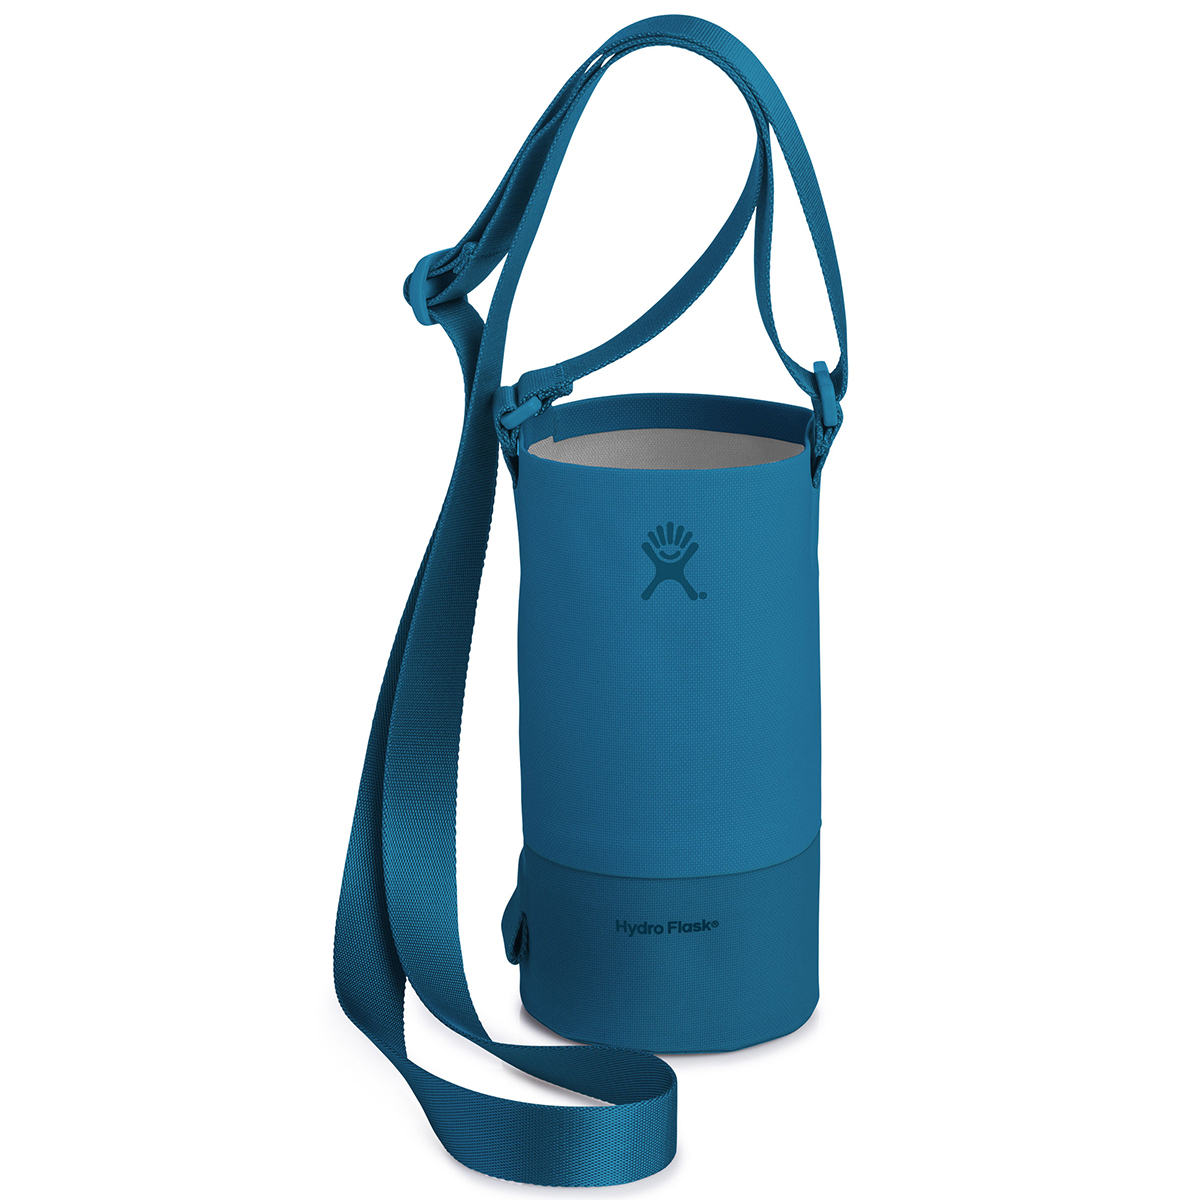 Hydro Flask Tag Along Bottle Sling, Large